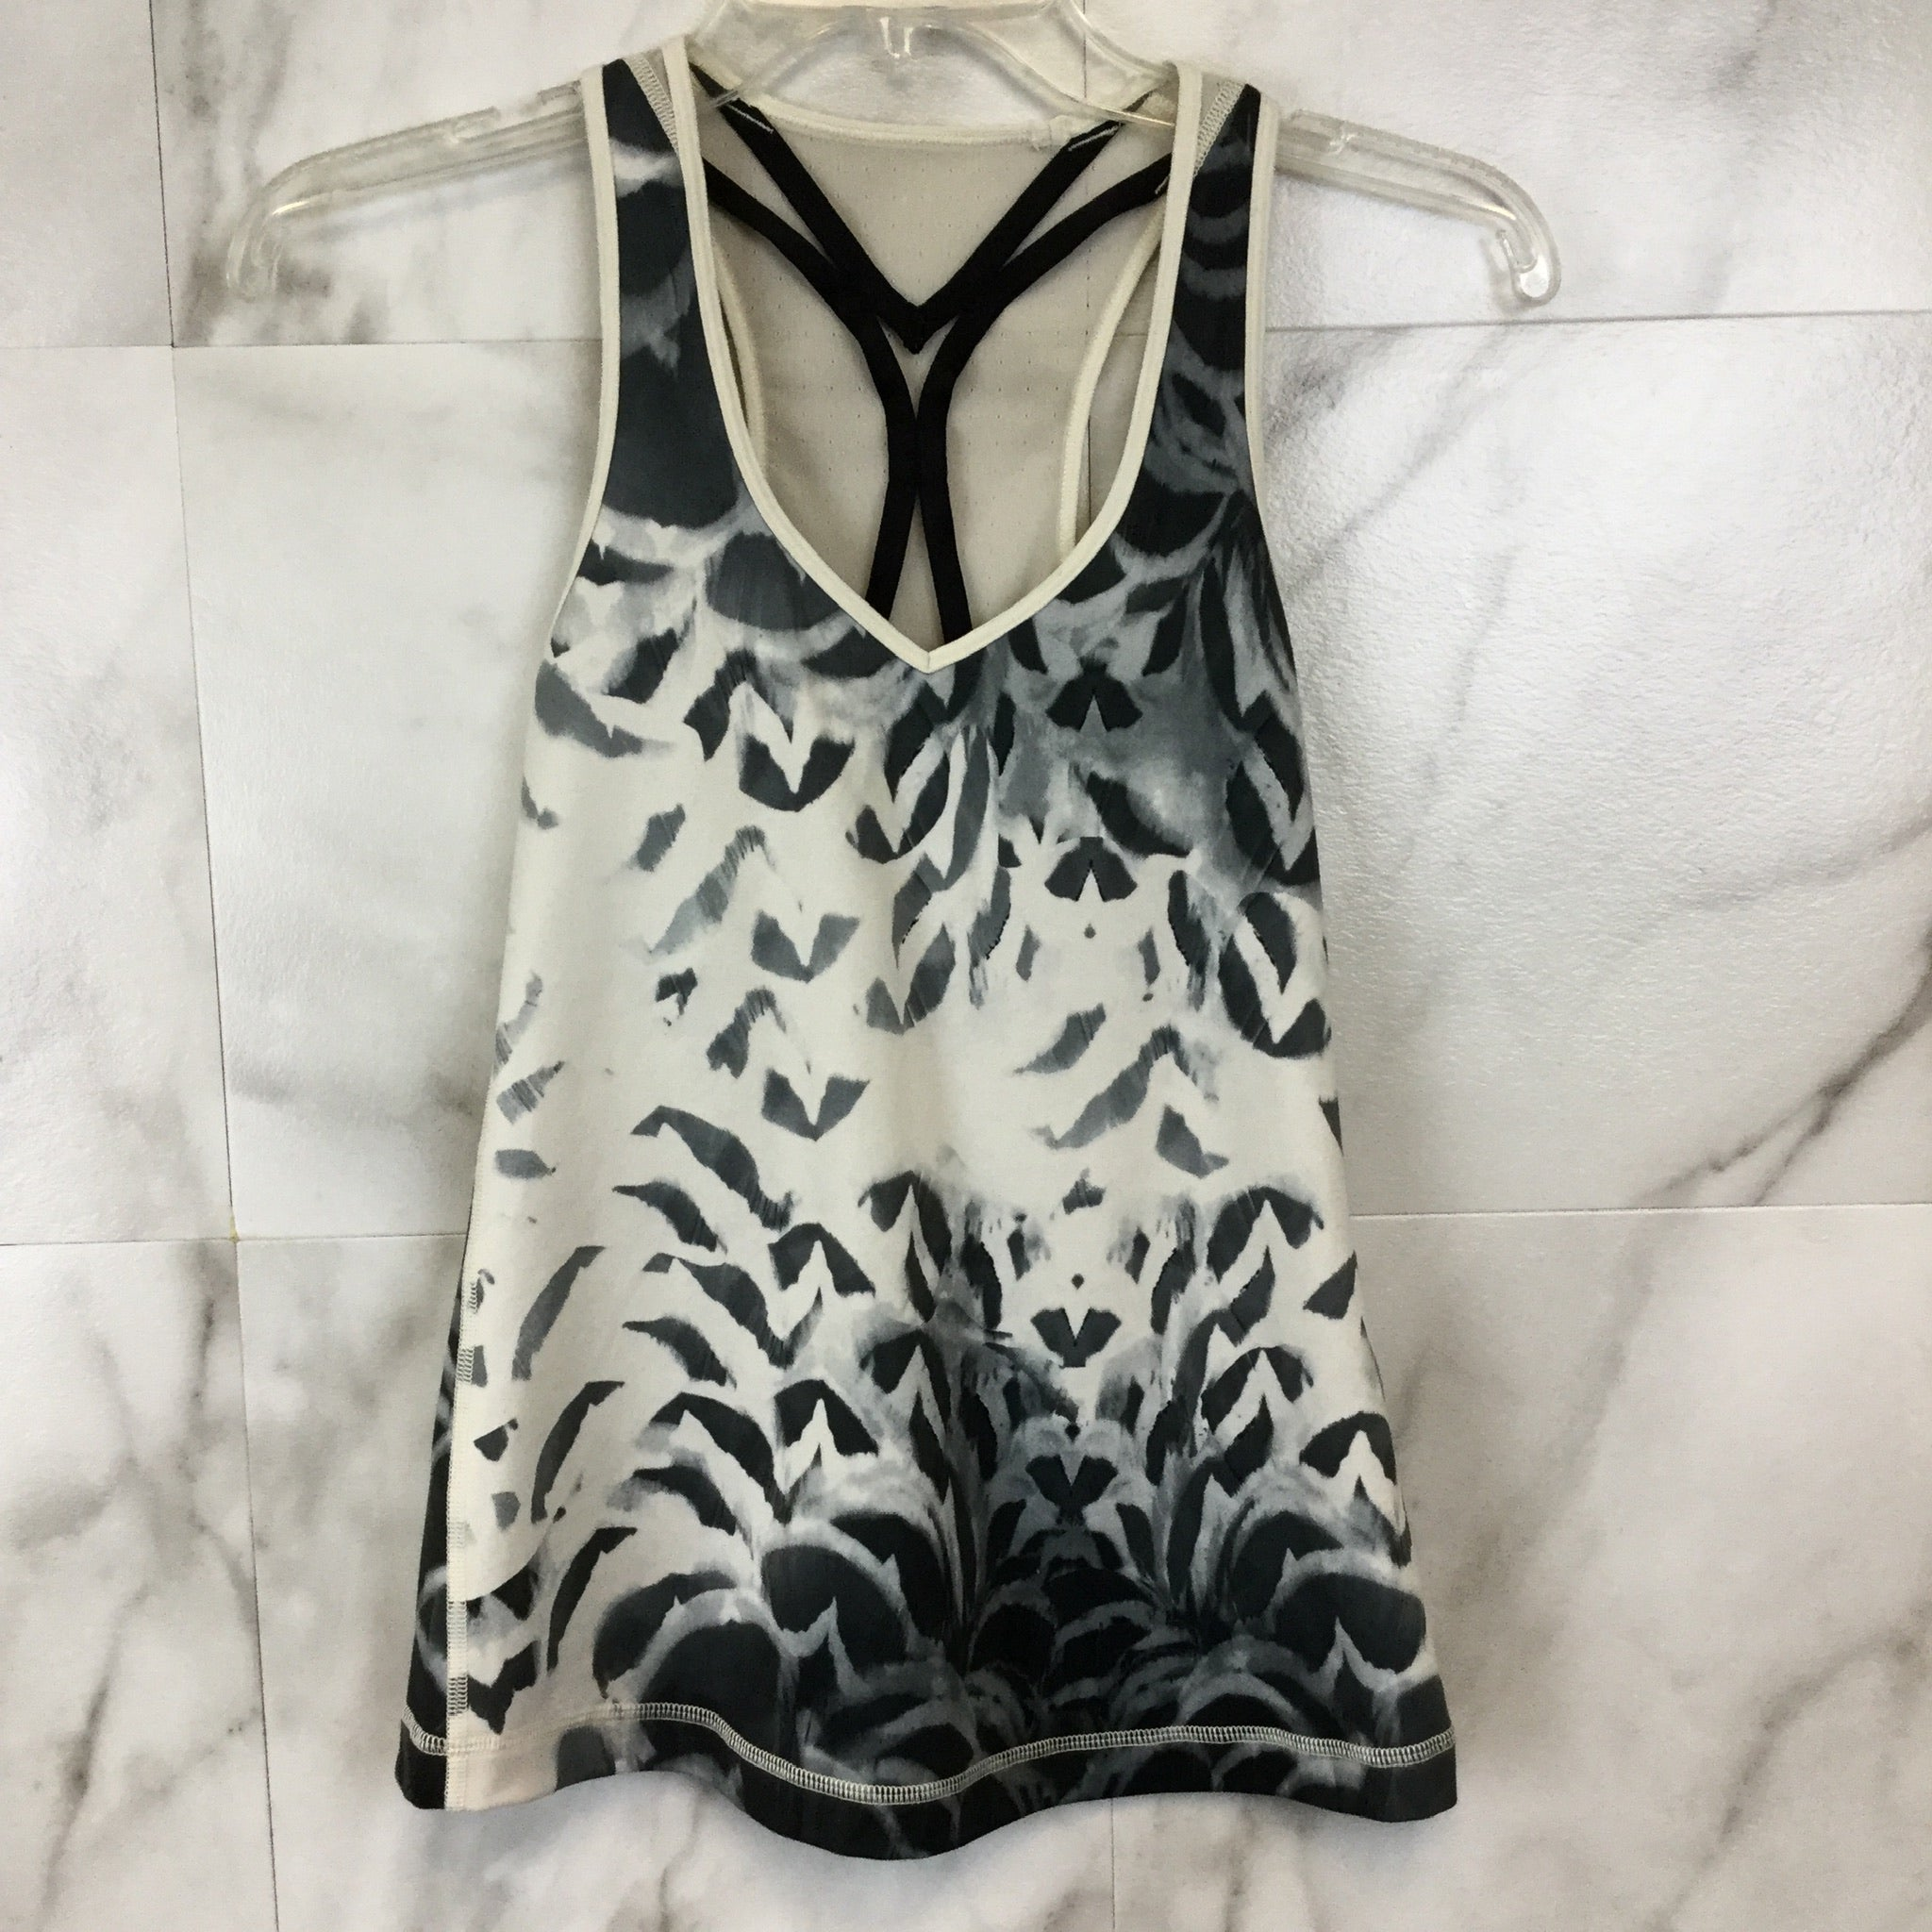 Lululemon Dance to Yoga Tank - size 4